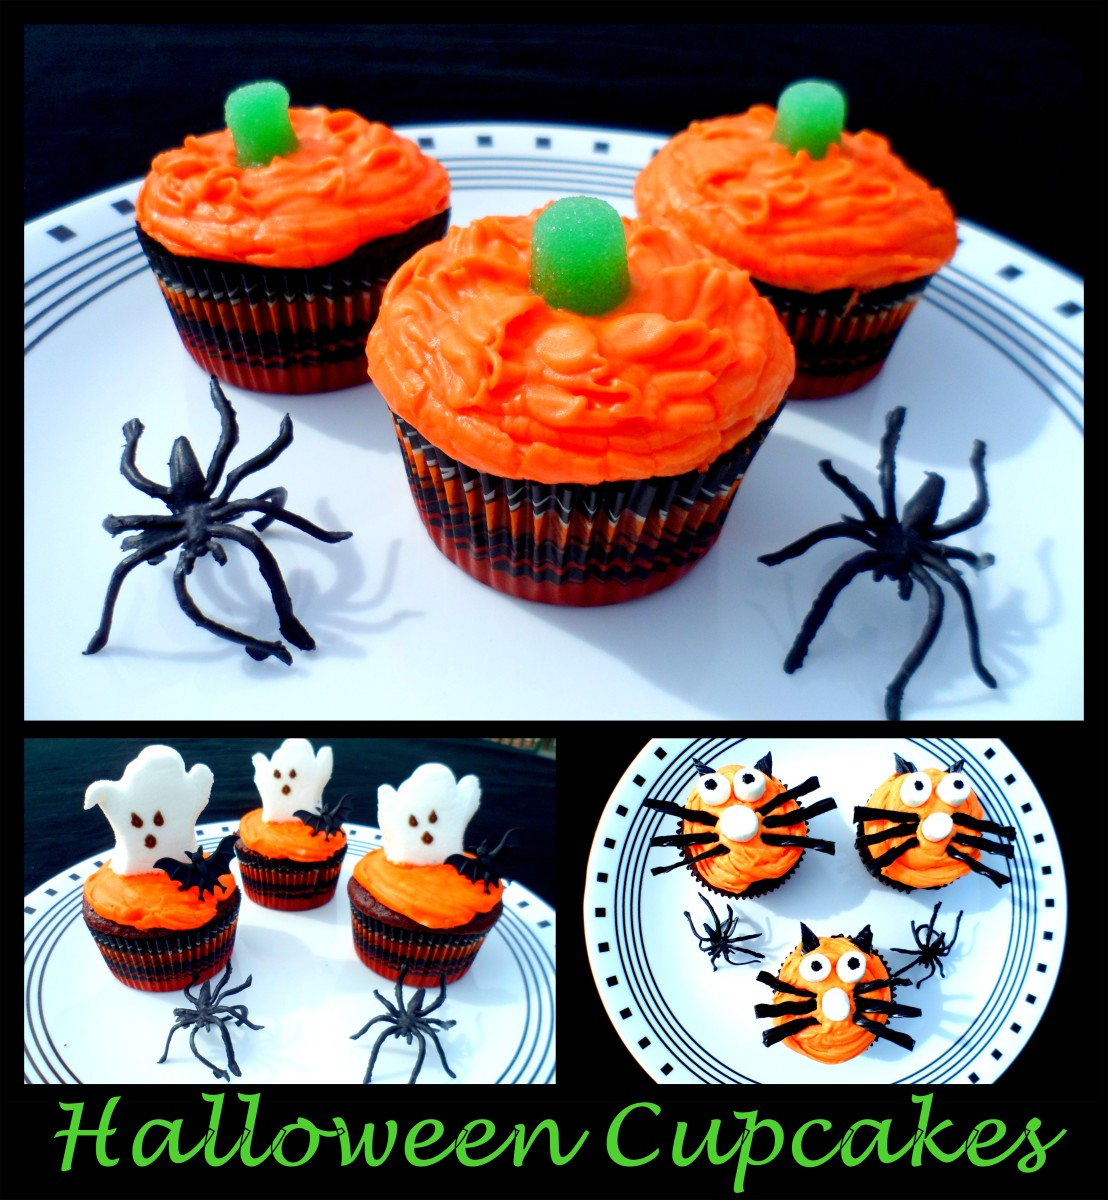 Three Spooky Halloween Cupcake Decorating Ideas